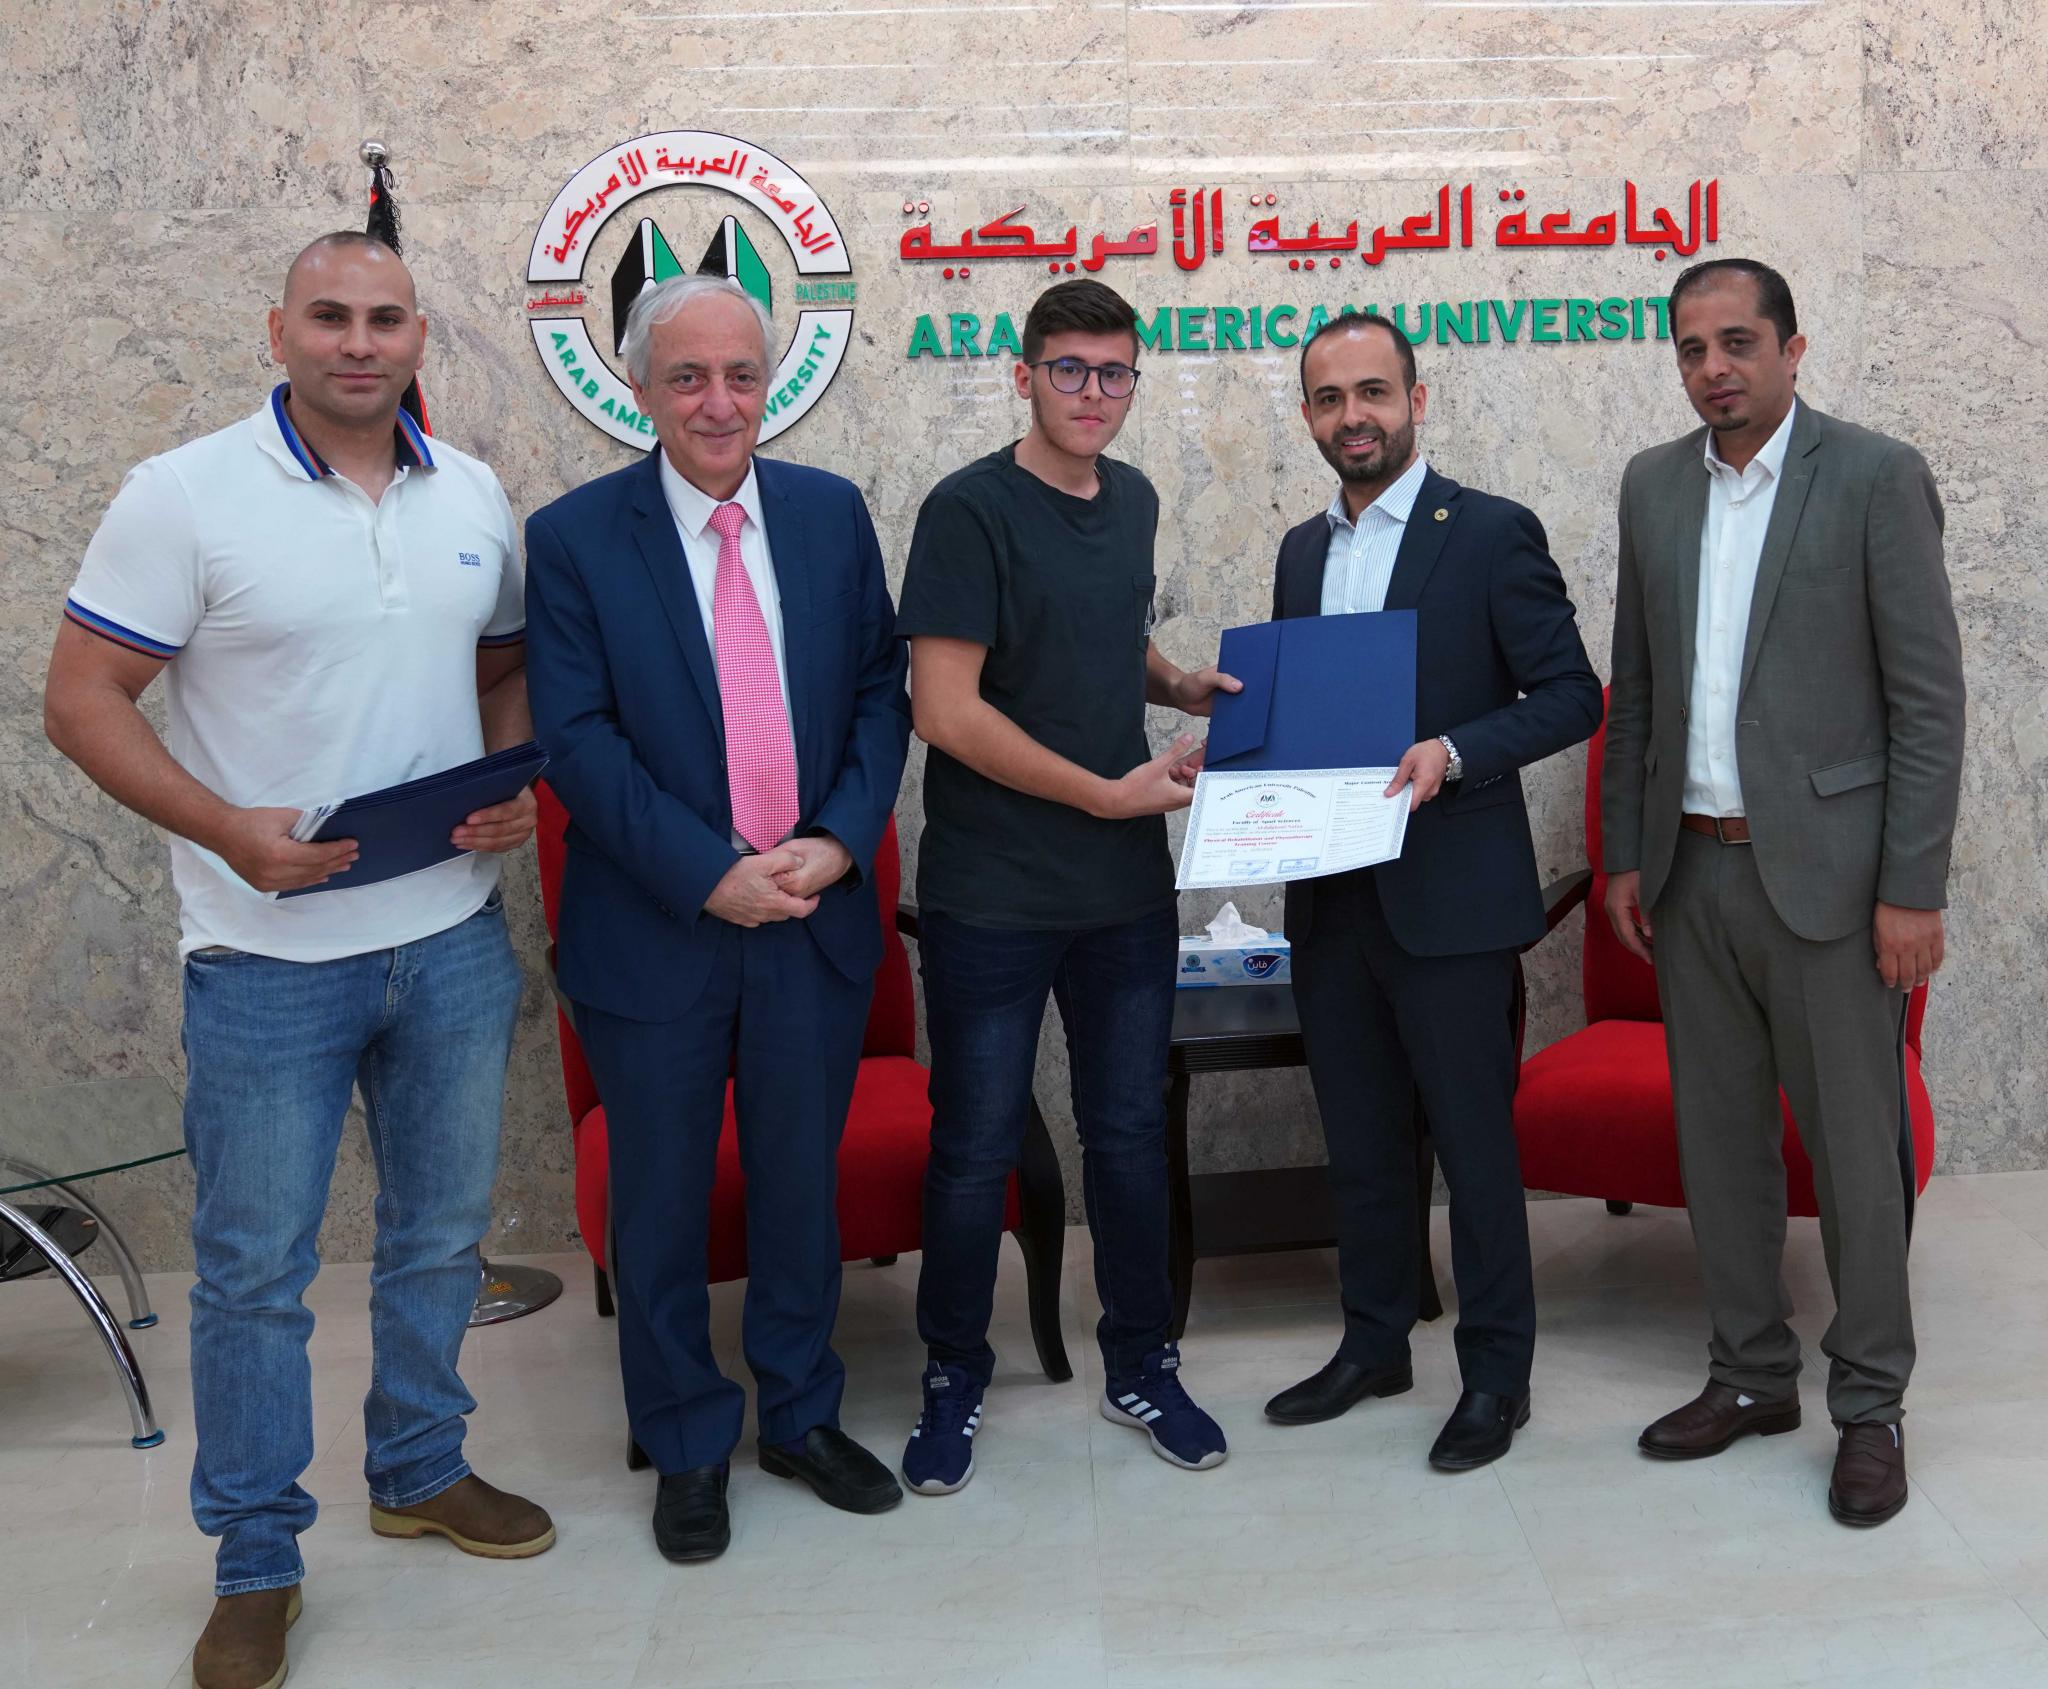 AAUP Graduated 17 Students From Sports Rehabilitation Course